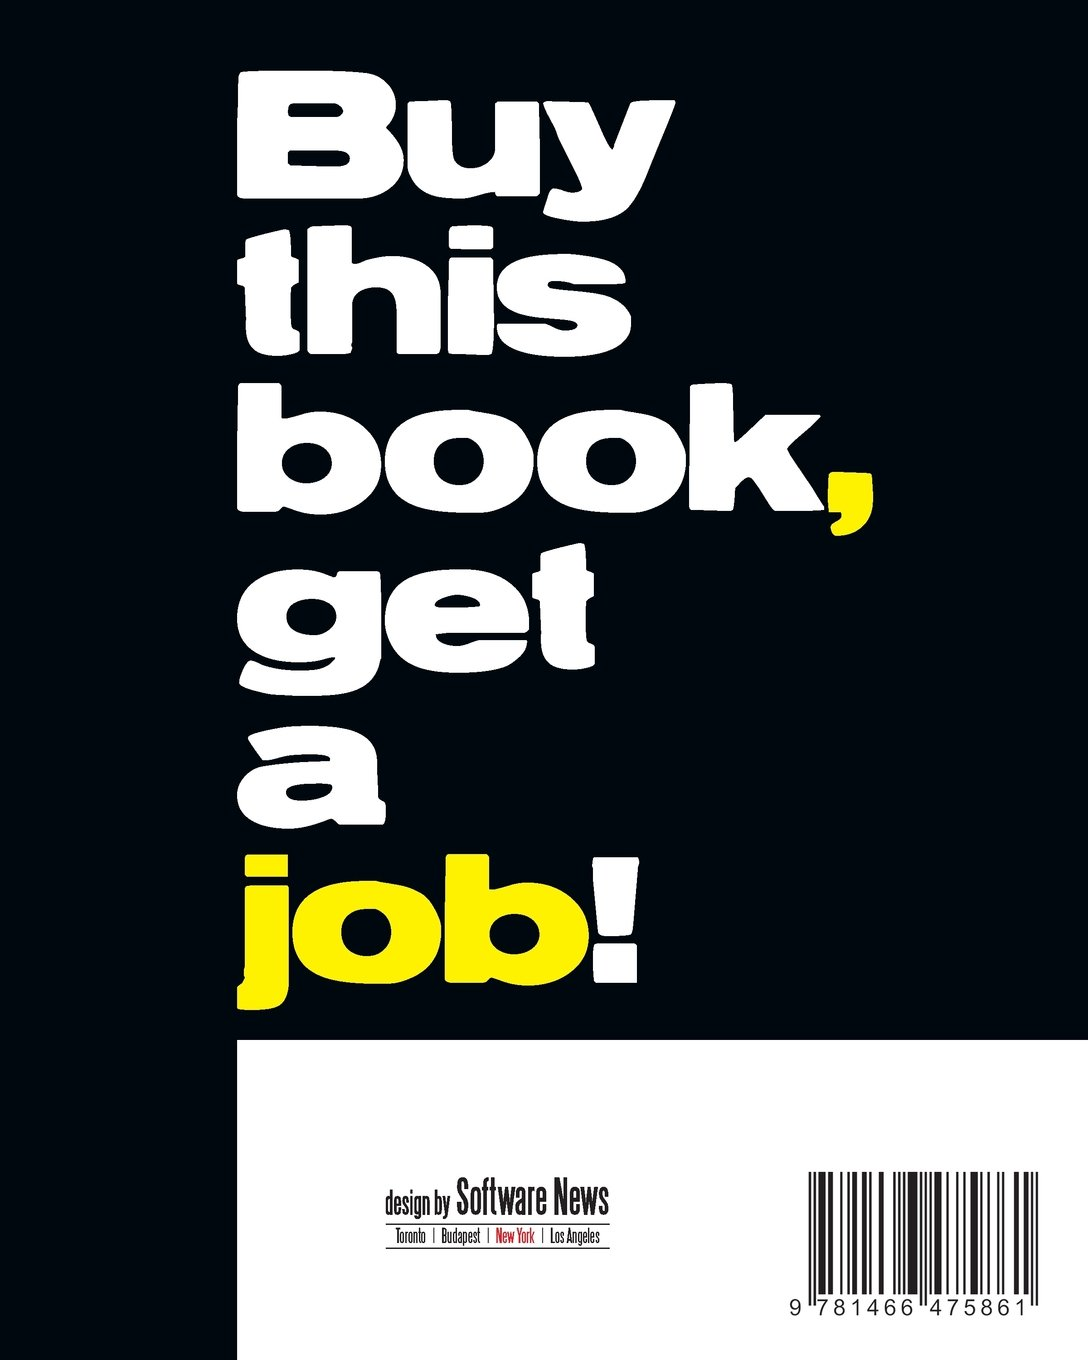 The Adobe Photoshop CS5 Professional Book: Buy this book, get a job !